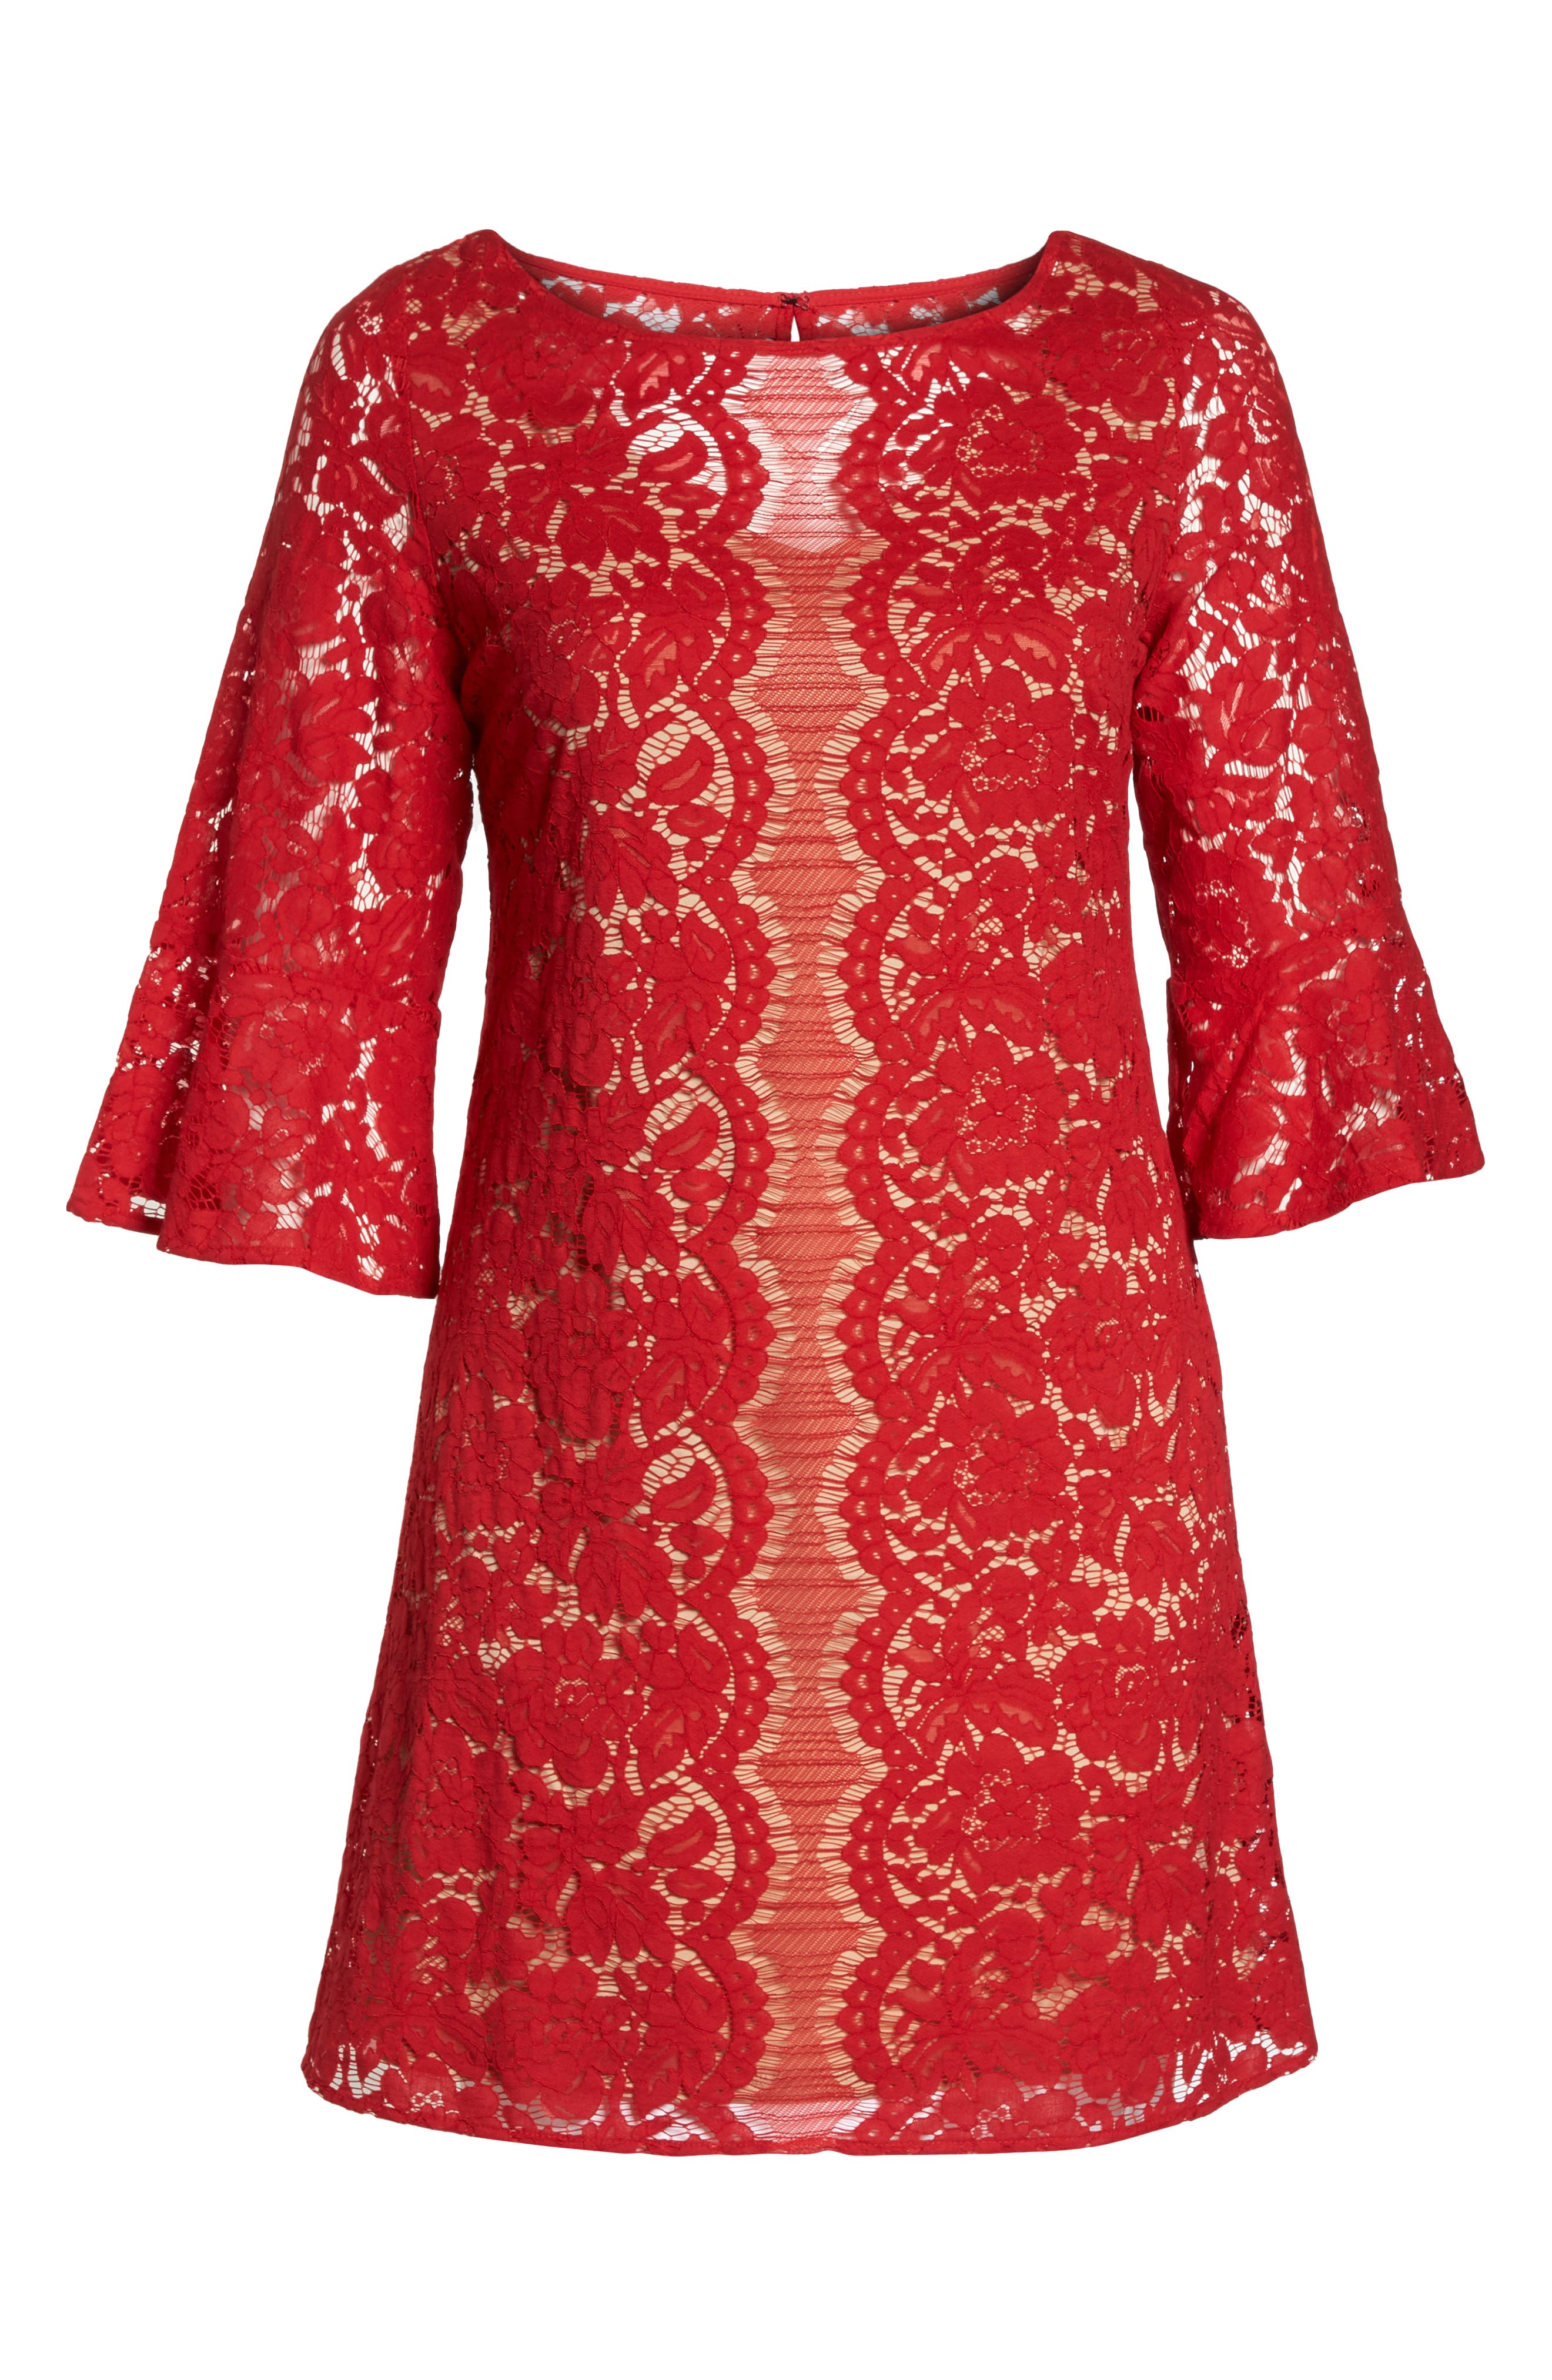 Bell Sleeve Lace Trapeze Dress,                             Alternate thumbnail 7, color,                             Red/ Cafe Mocha